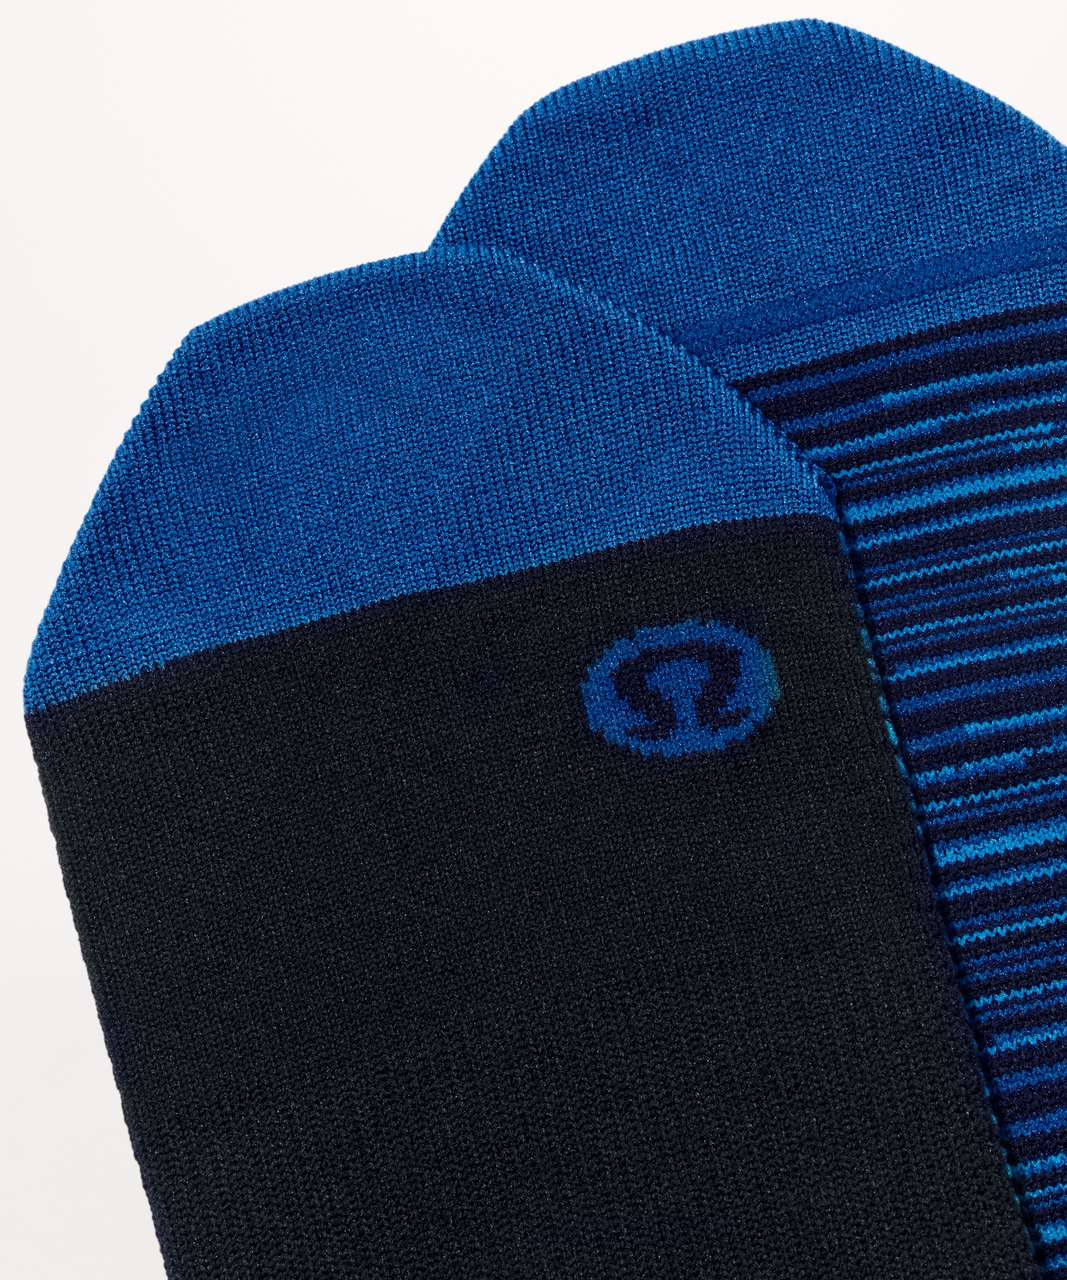 Lululemon Play All Day Sock - Dark Royal / Black